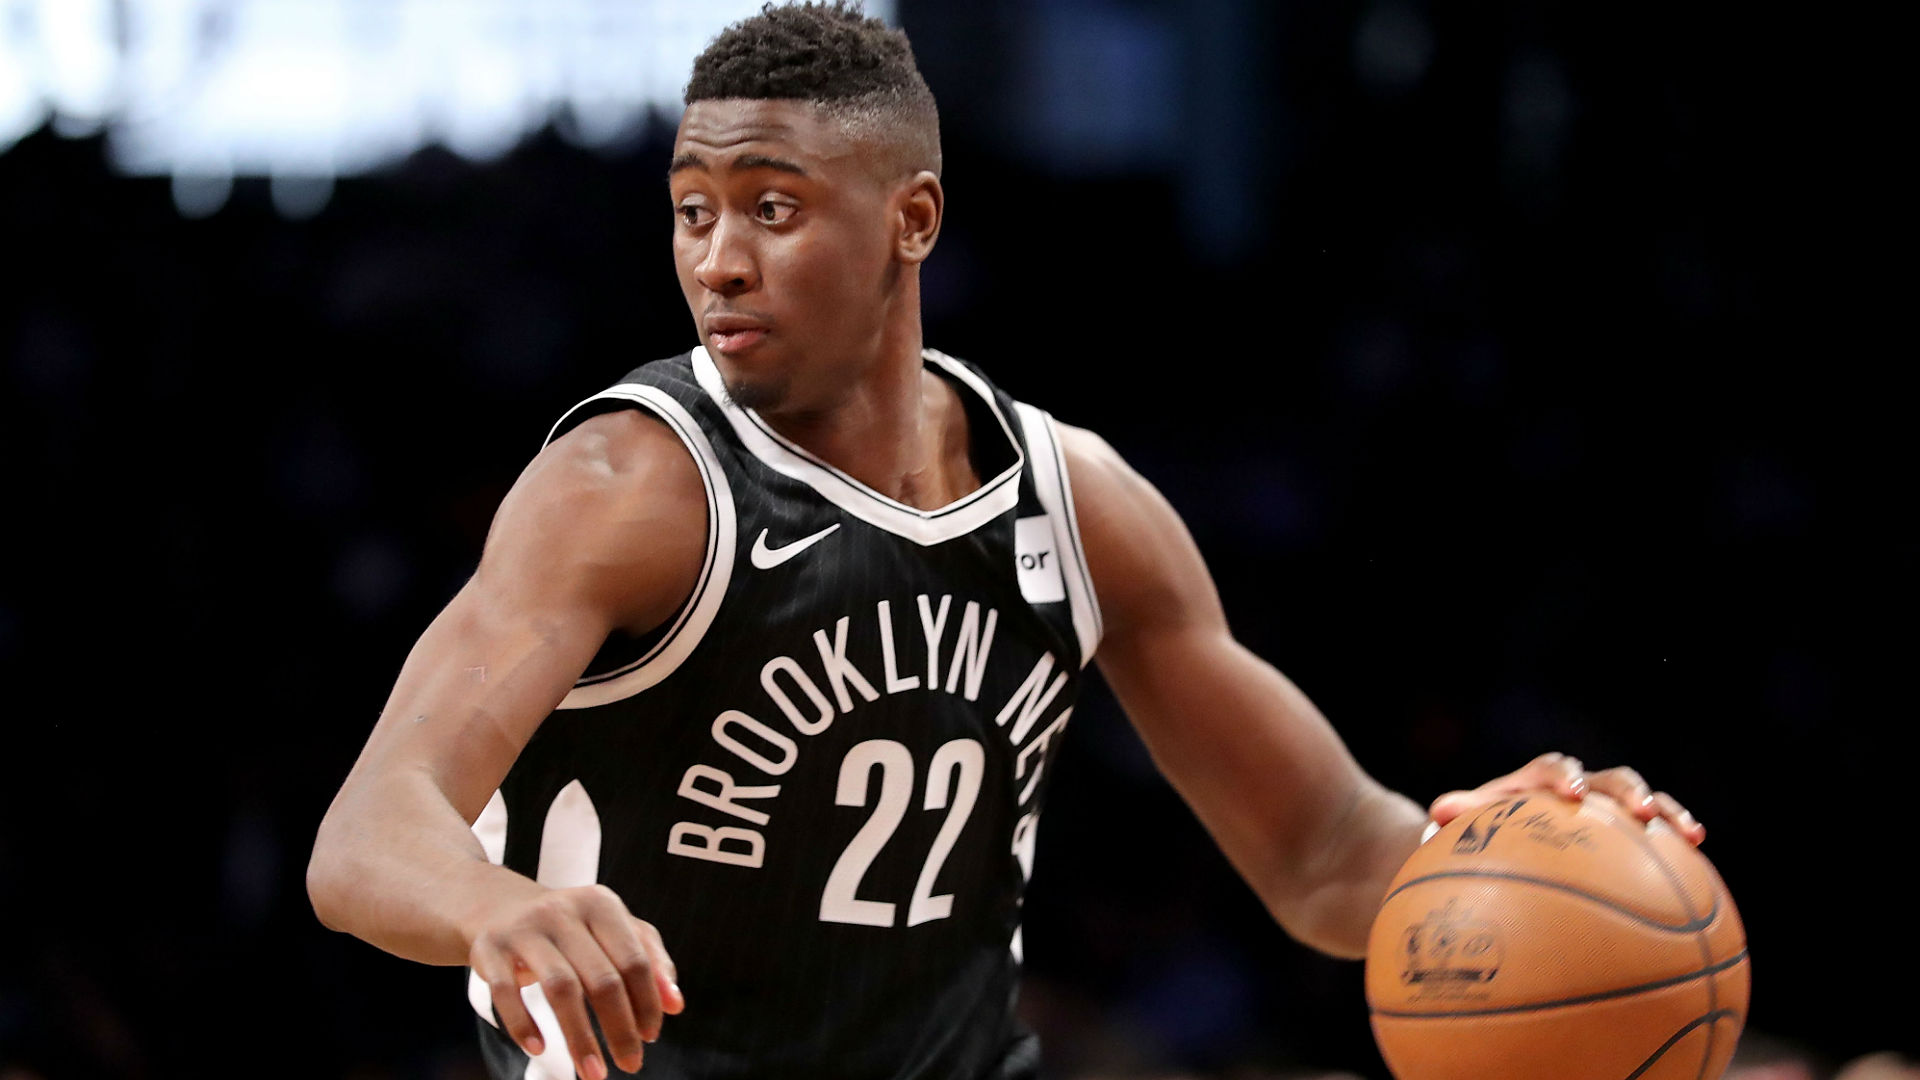 Twitter reacts to Caris LeVert's gruesome injury